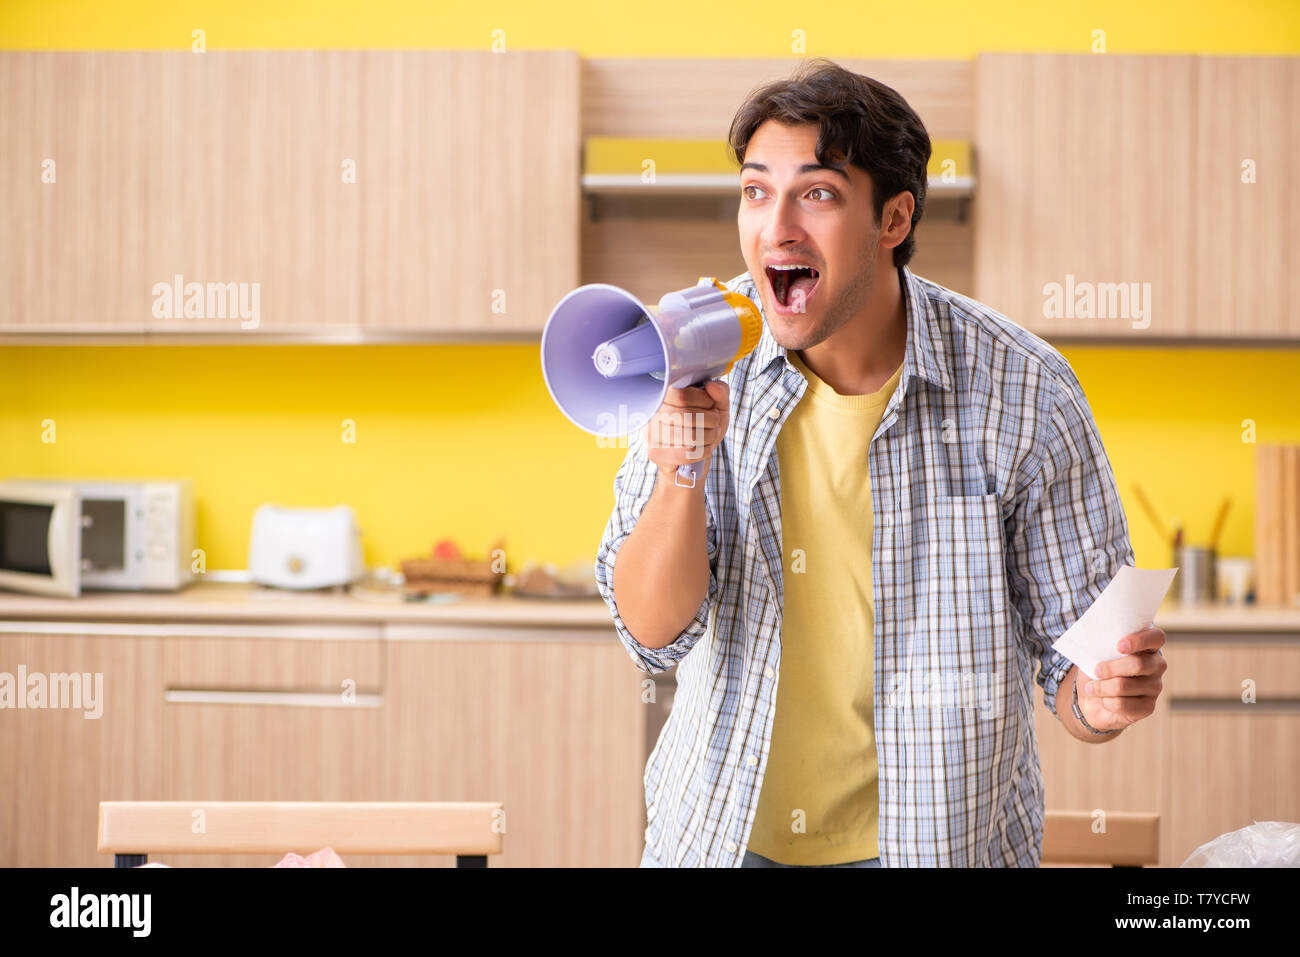 Young man calculating expences for vegetables in kitchen - Stock Image